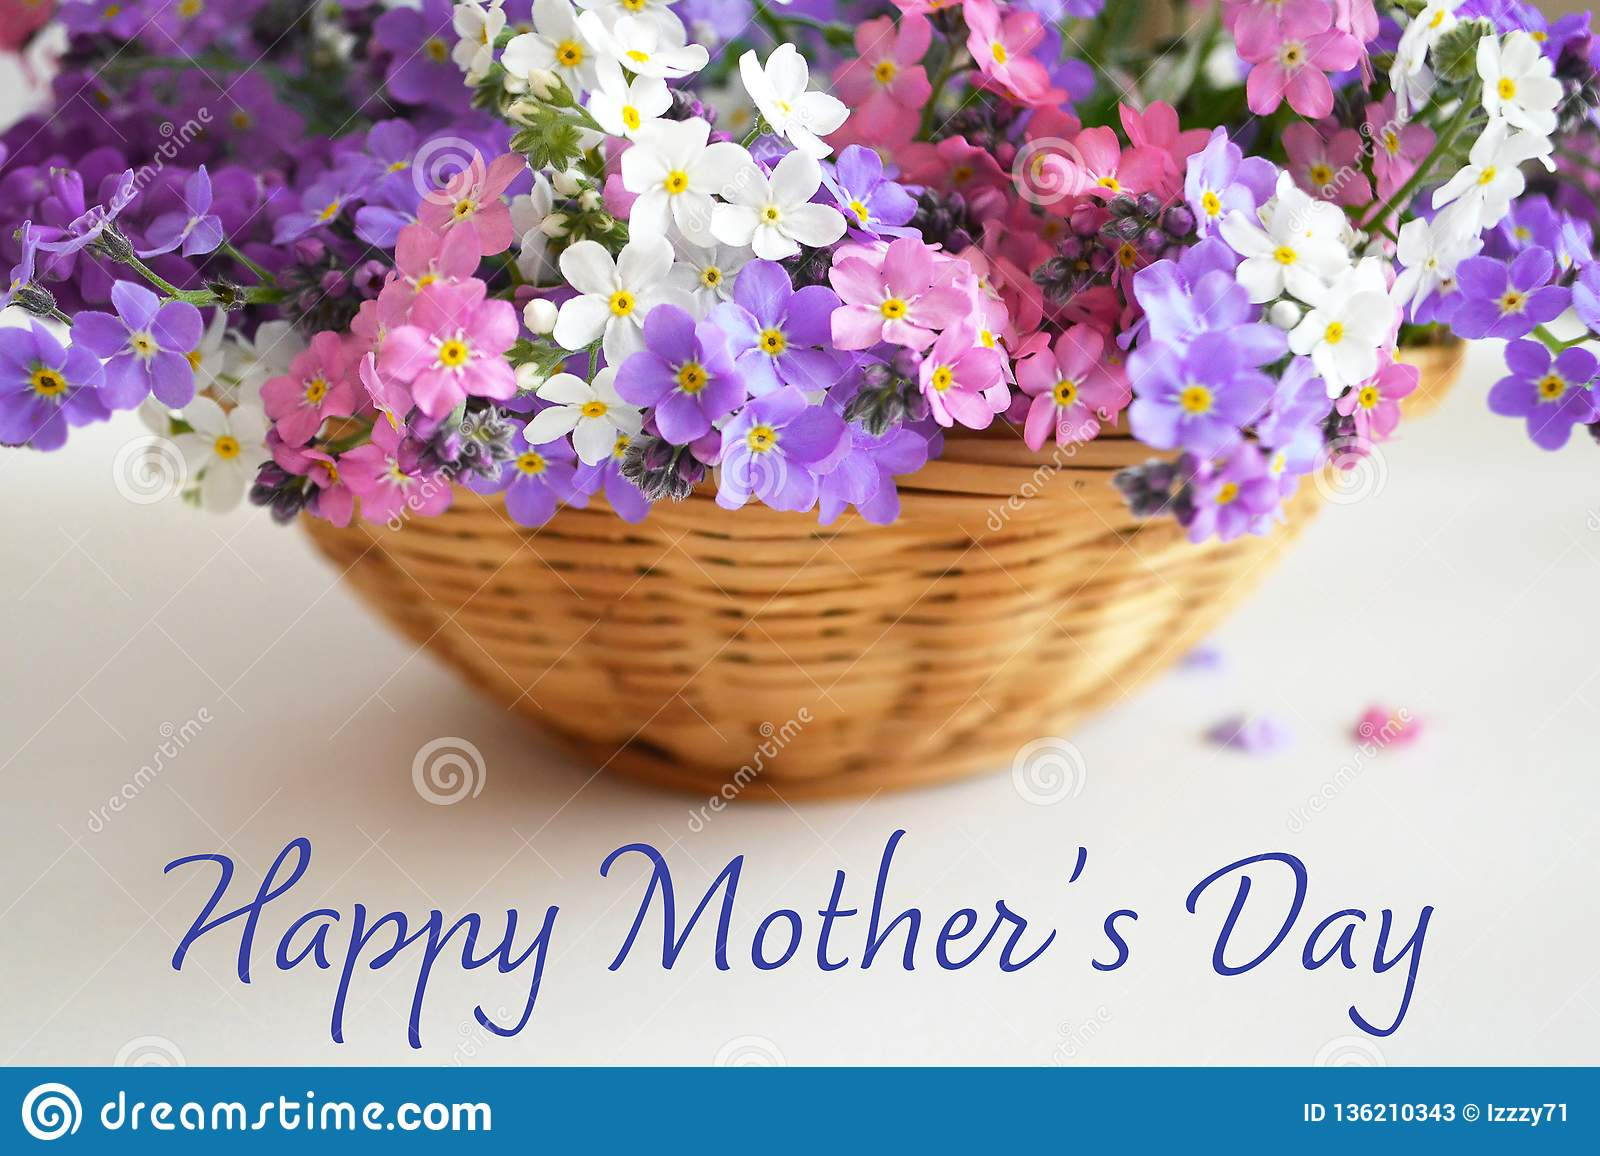 Happy Mothers Day. Mothers Day flowers in the basket